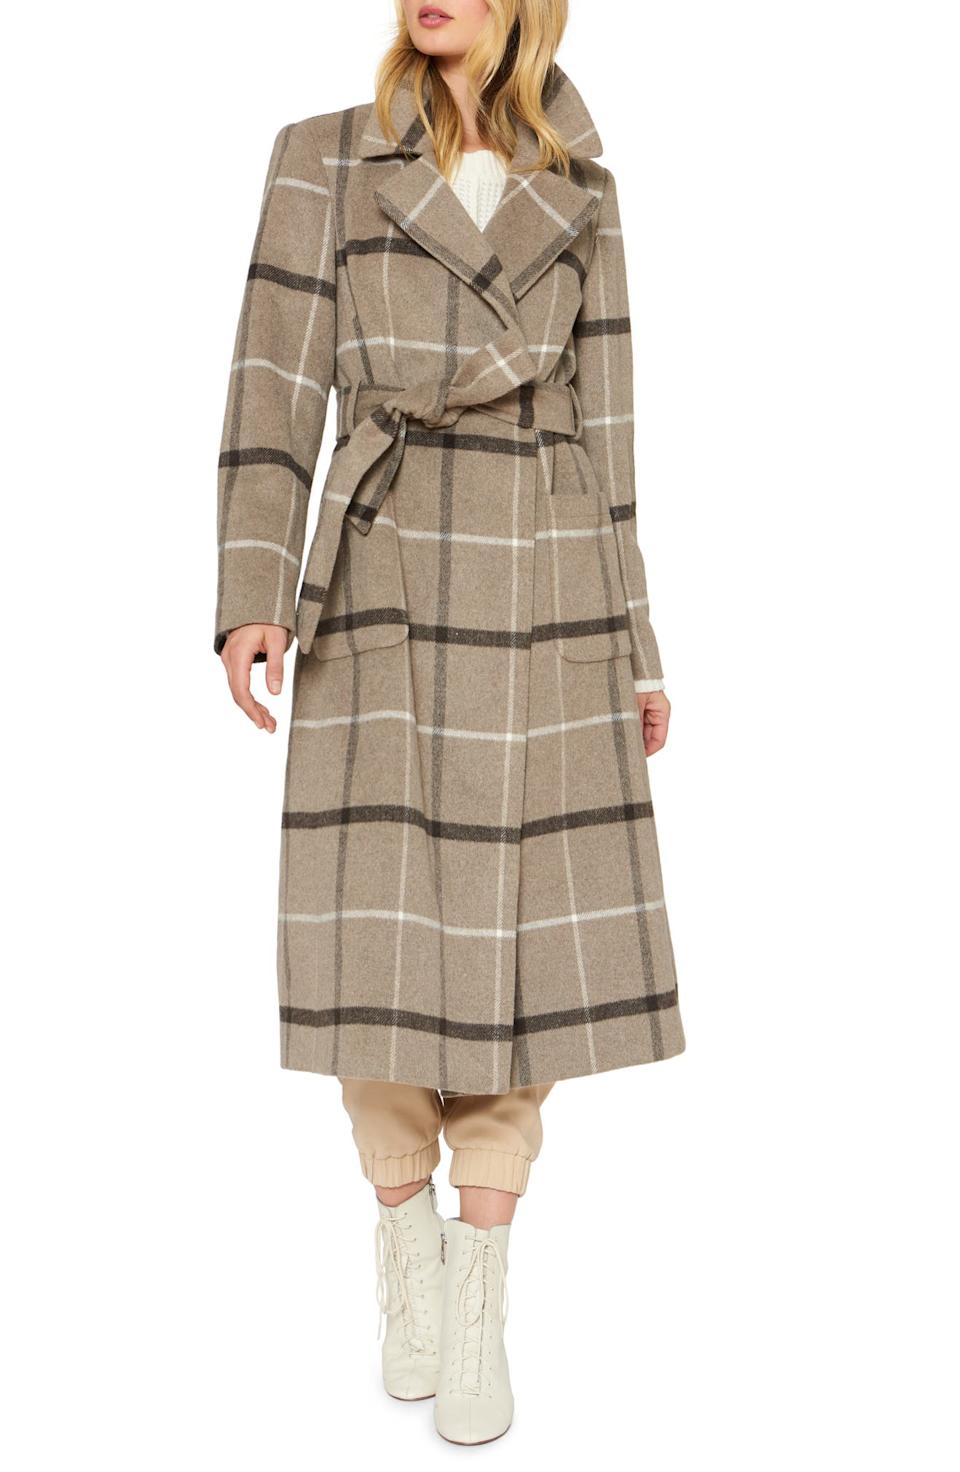 Sanctuary Plaid Wool Blend Wrap Coat. Image via Nordstrom.